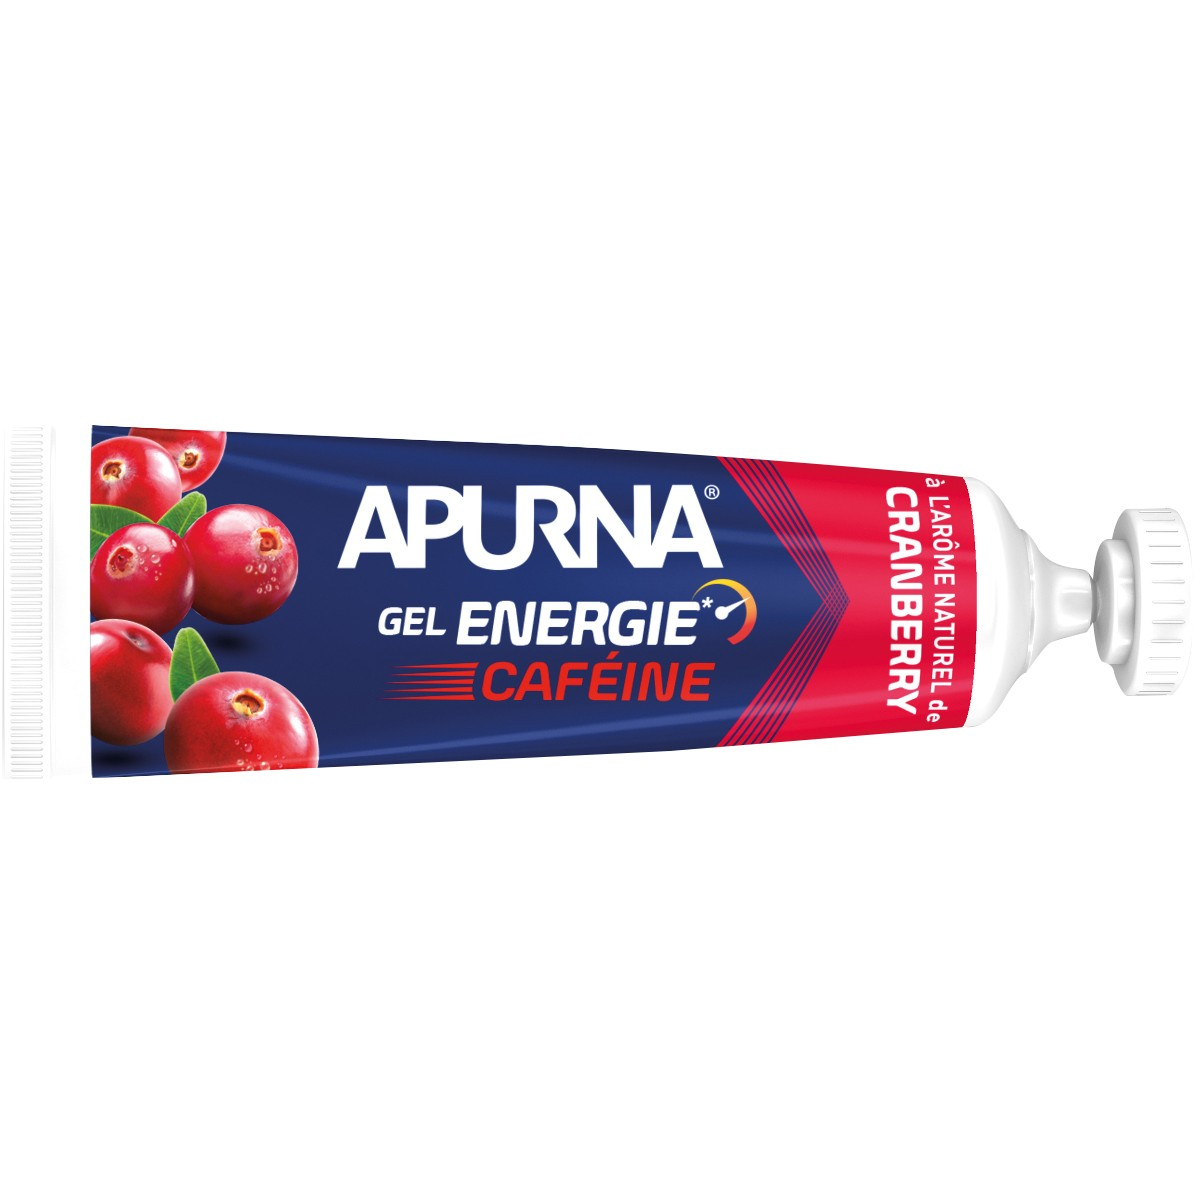 GEL ENERGIE APURNA 35G - PASSAGE DIFFICLE - AROME CAFEINE CRANBERRY